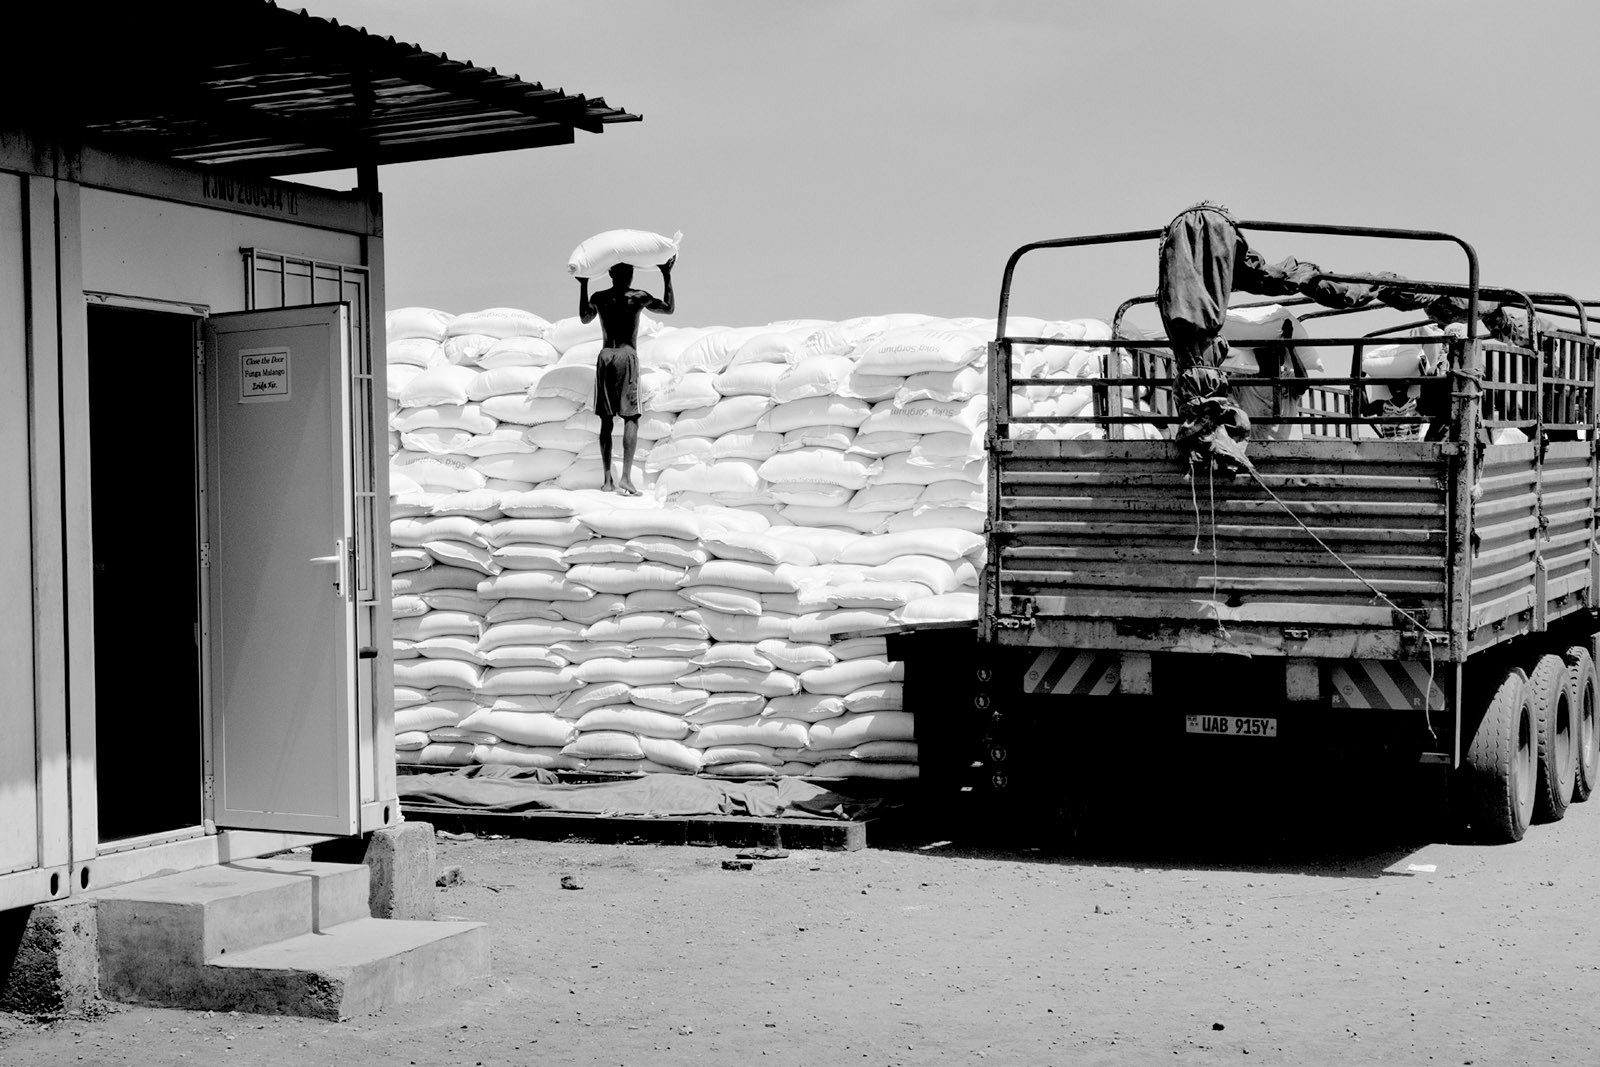 A worker stacking bags of grain at the World Food Programme warehouses in Juba, South Sudan, March 2016